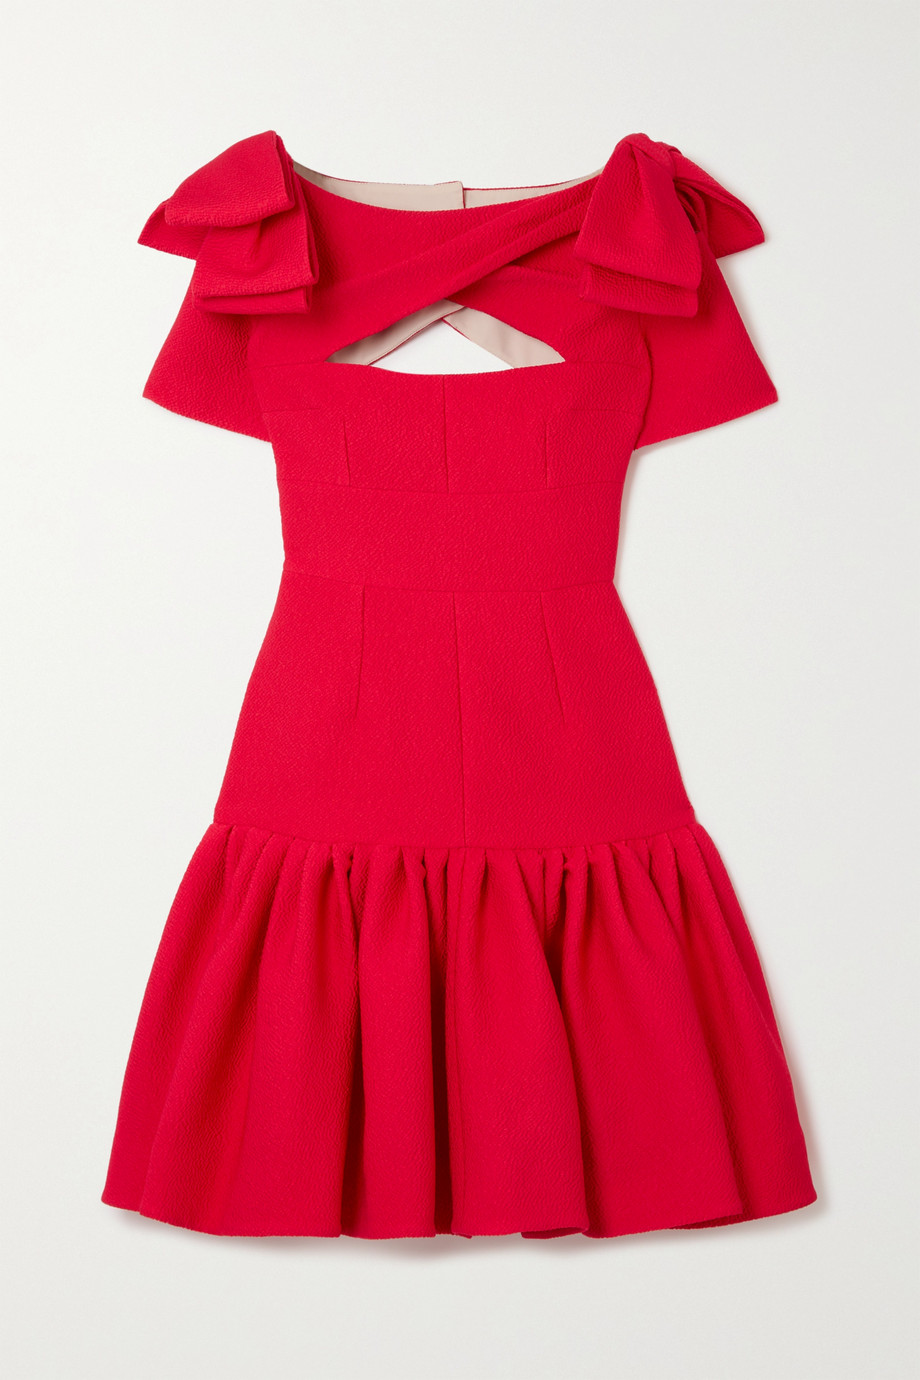 Emilia Wickstead Bow-detailed cutout cloqué mini dress